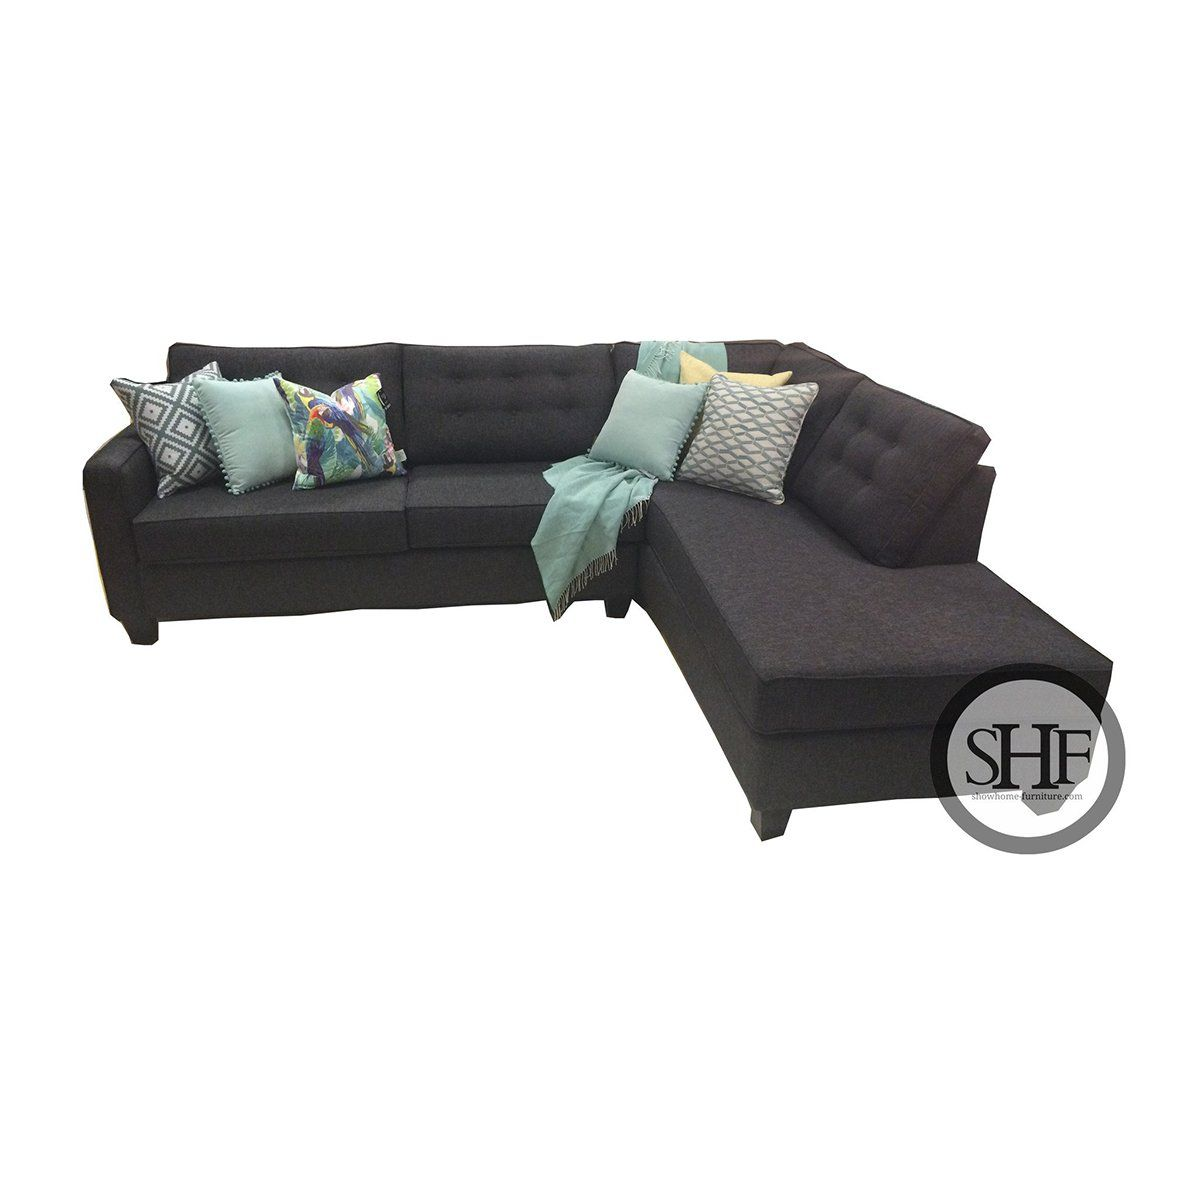 seat right item products side malibu england miller sectional number chaise sofa